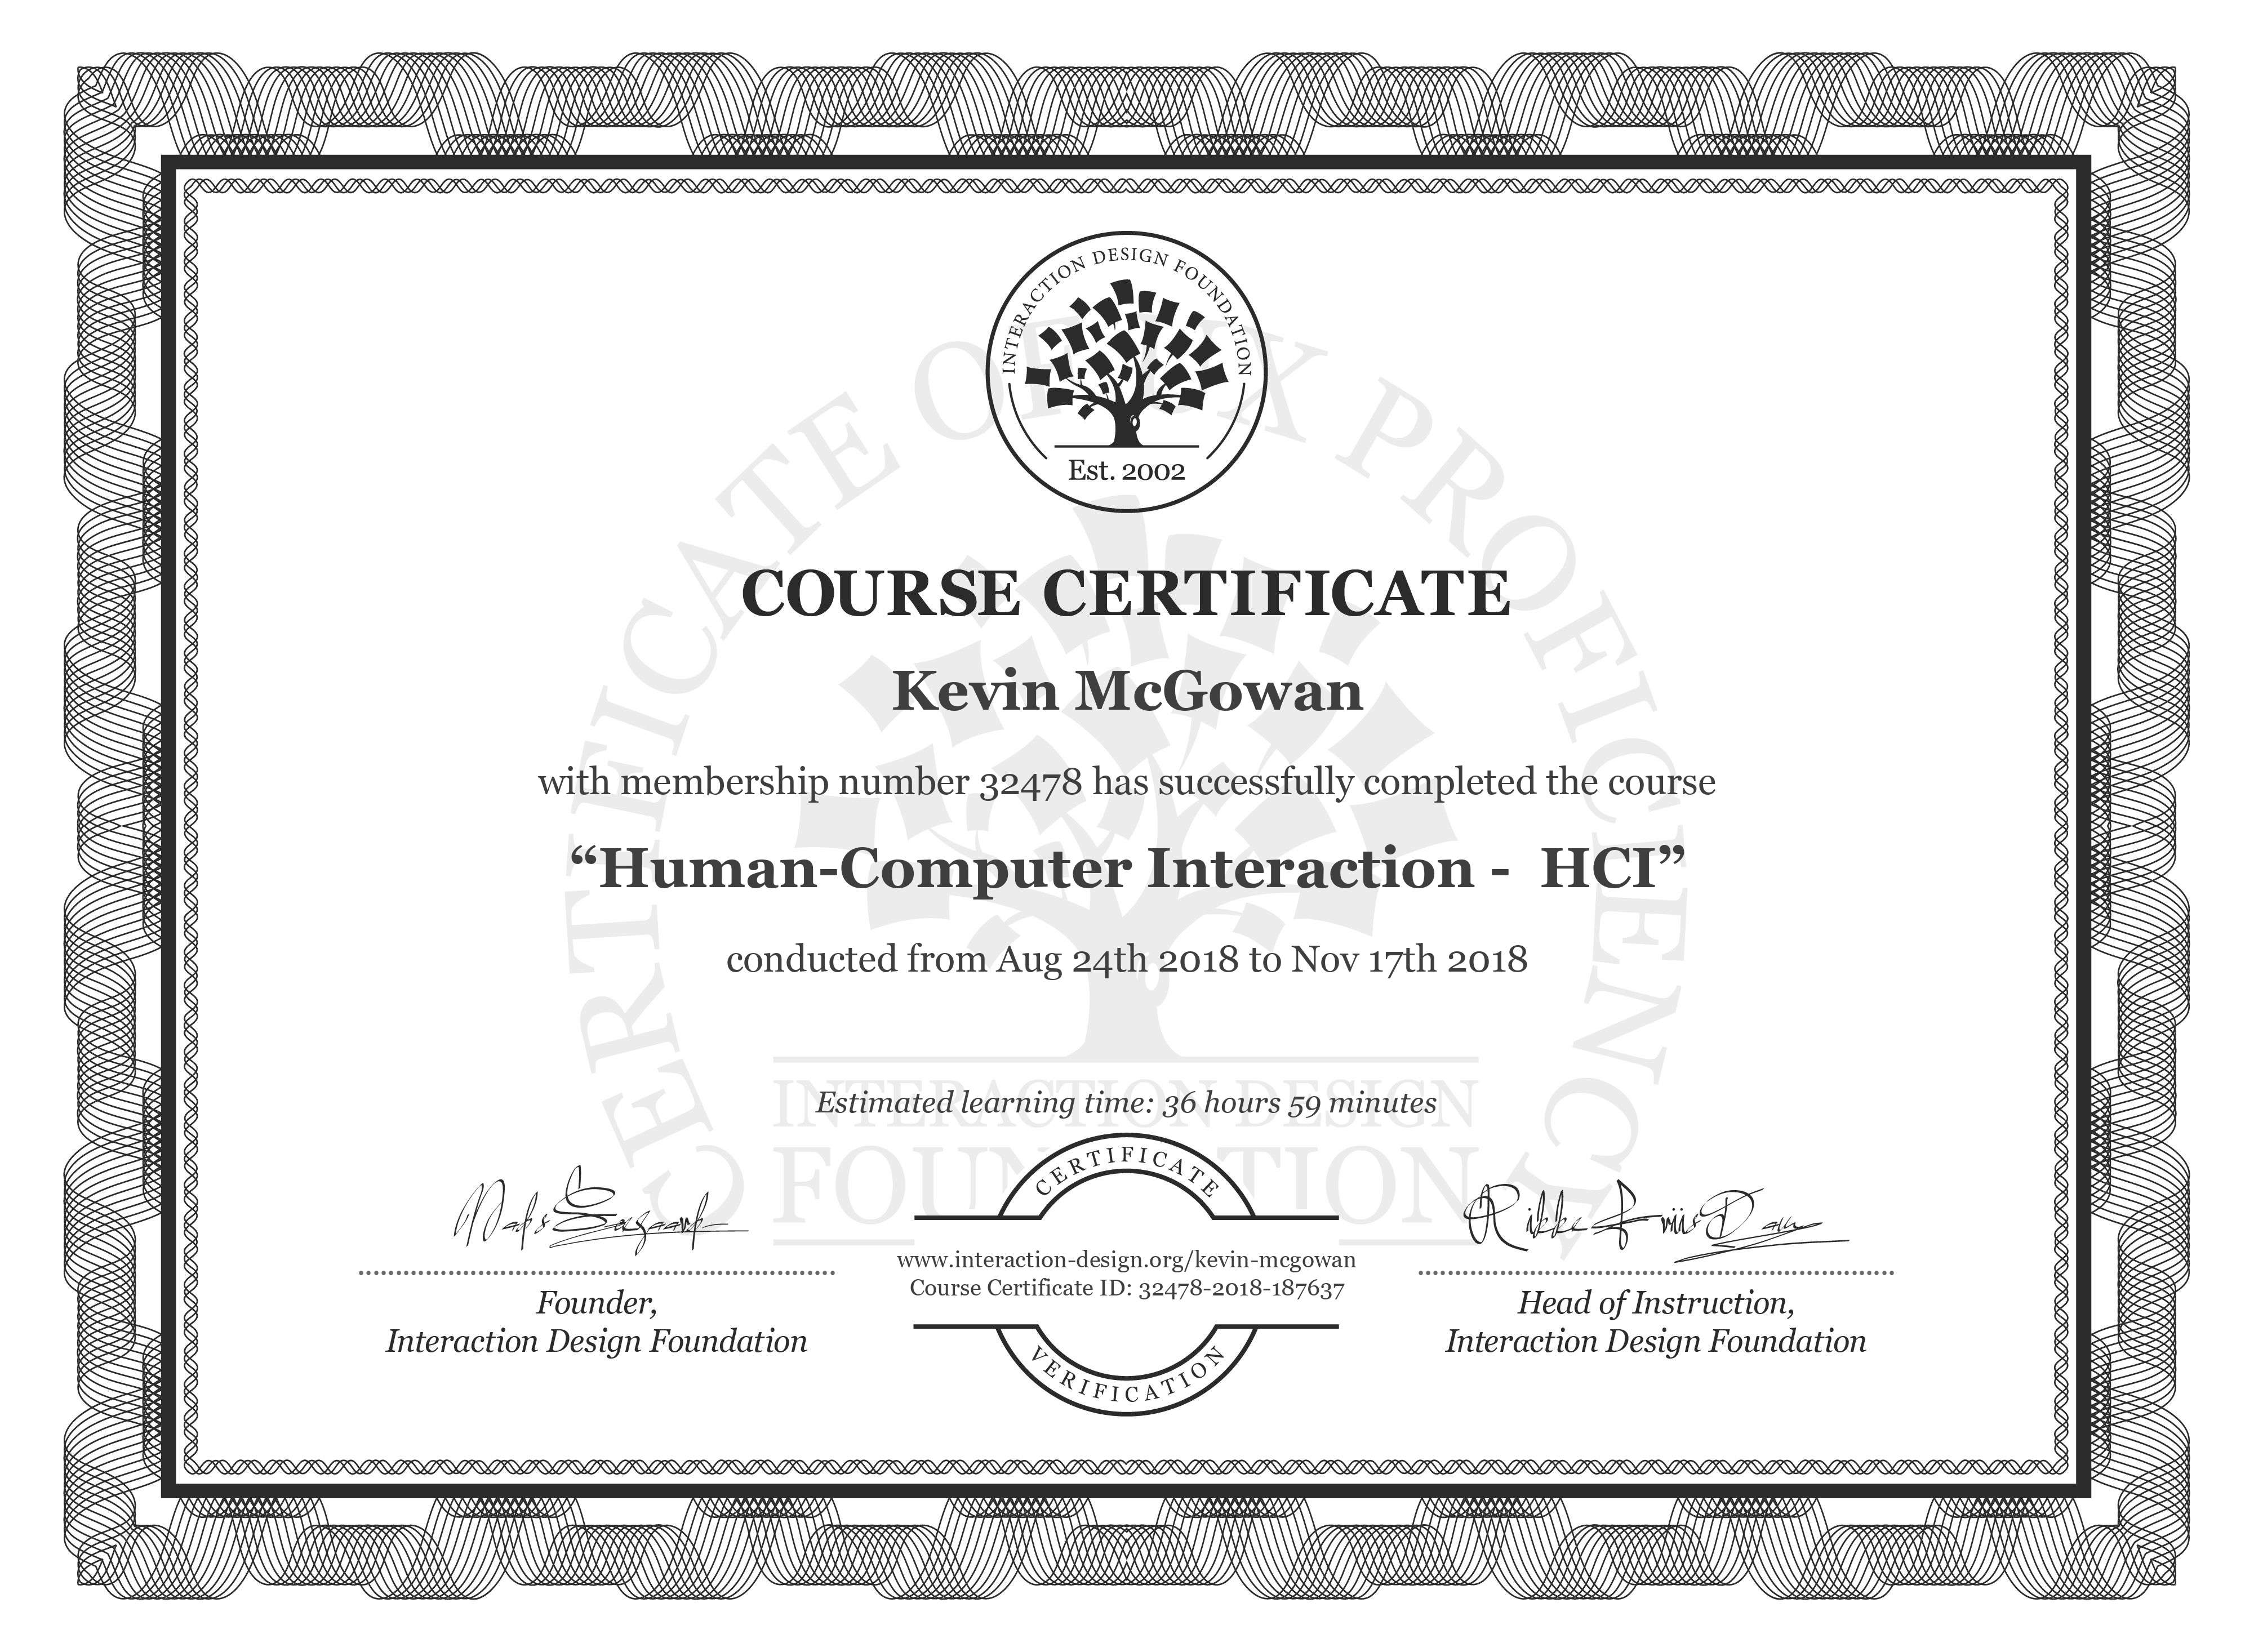 Kevin McGowan's Course Certificate: Human-Computer Interaction -  HCI